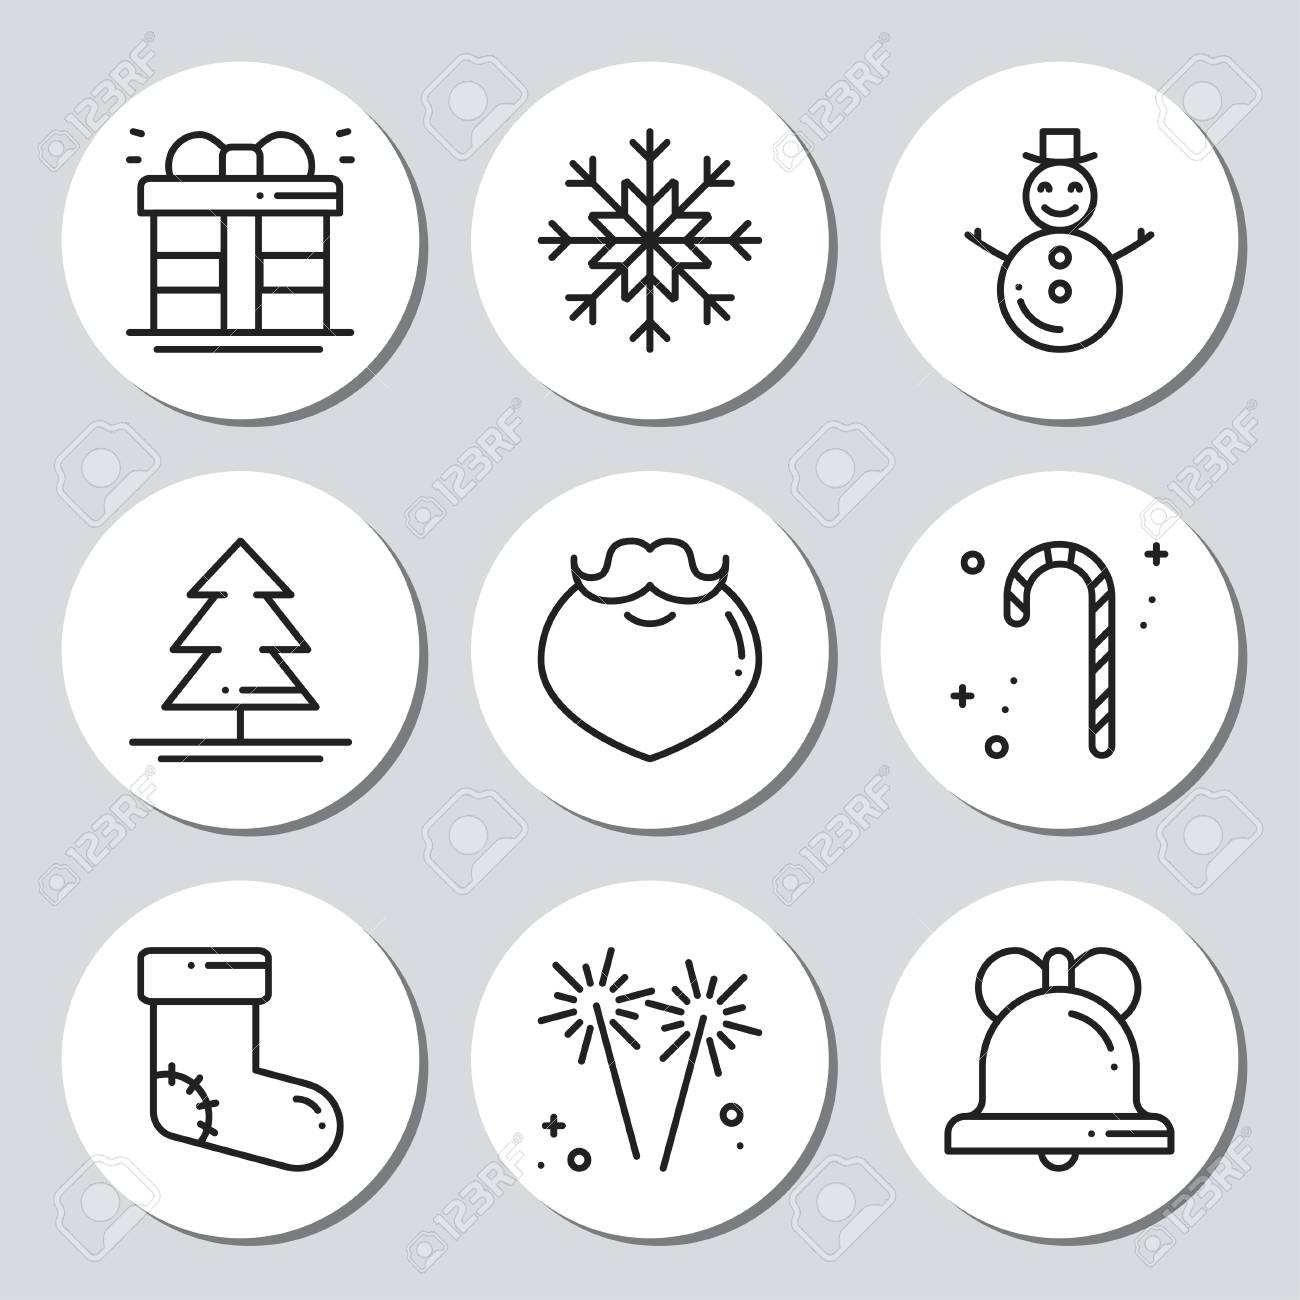 christmas new year icons gift round stickers labels xmas set hand drawn decorative element